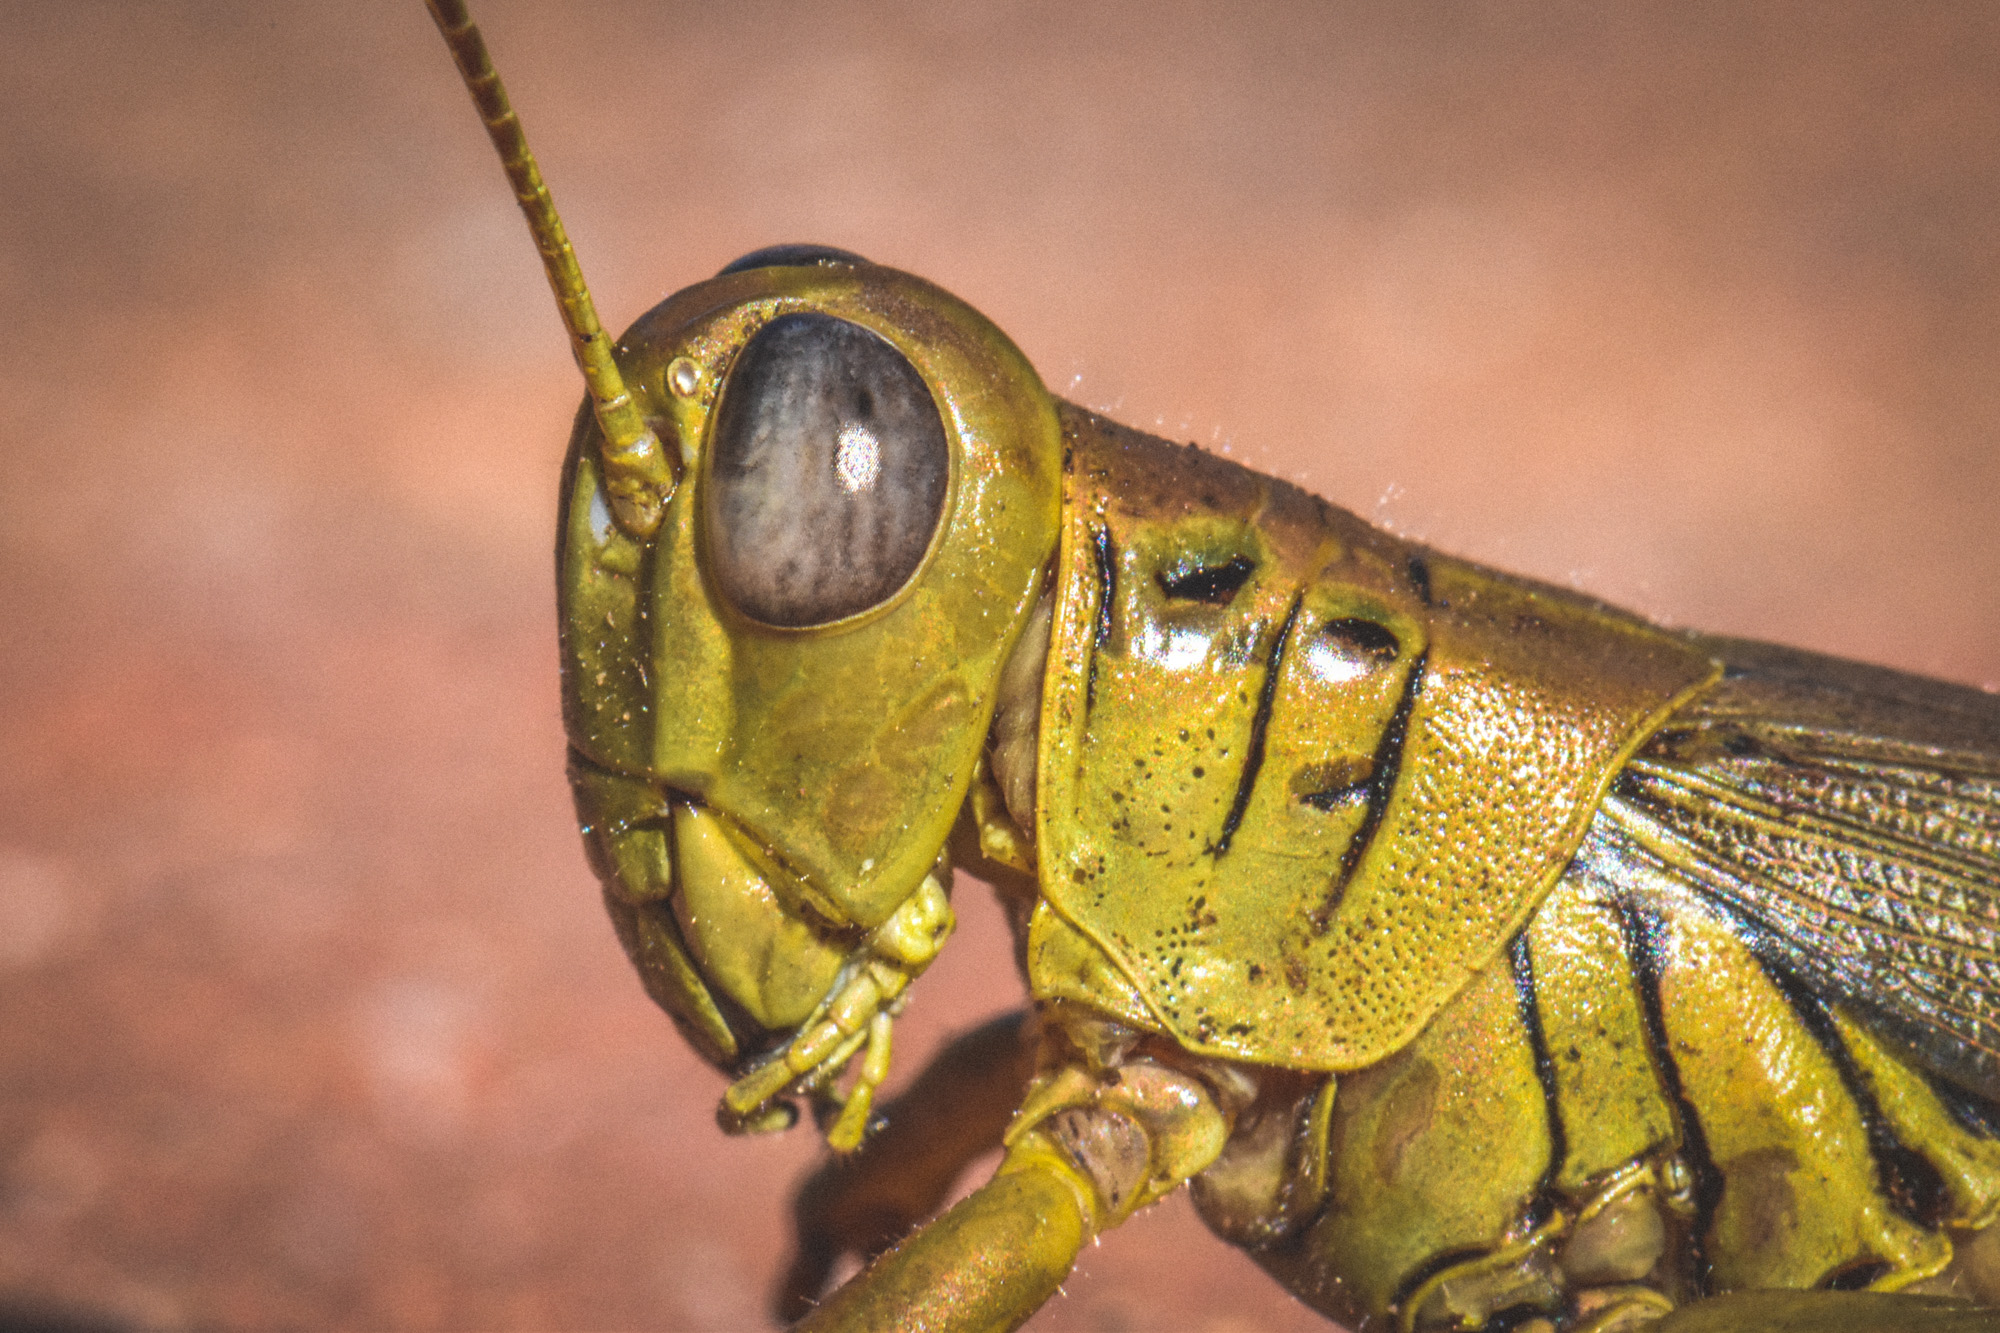 Strong profile of a grasshopper